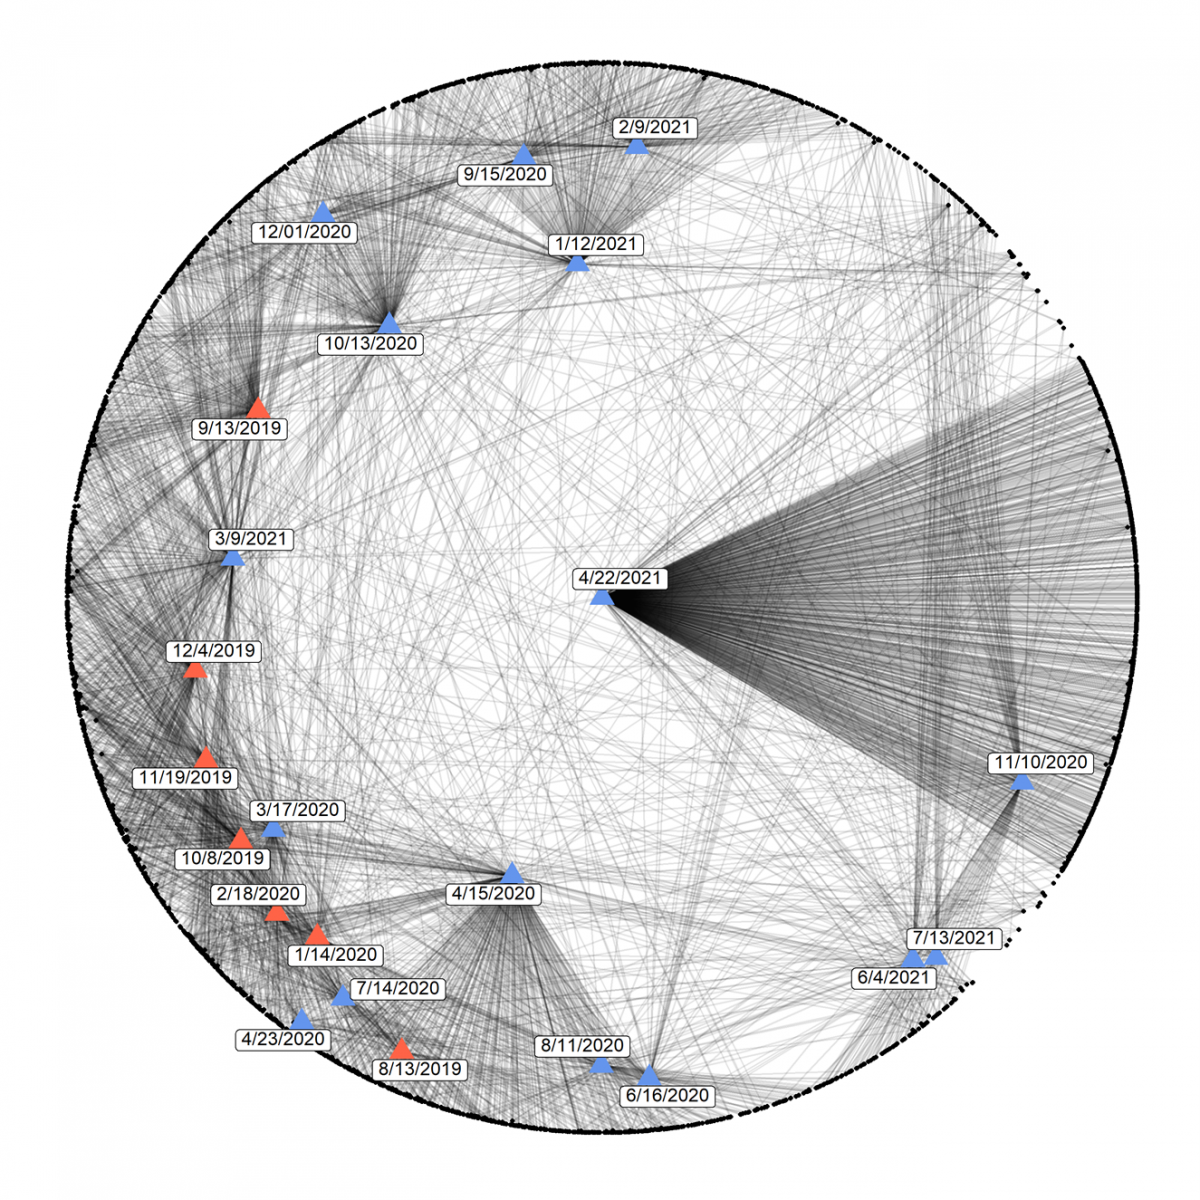 Graph representation of the entire EPN attendance network from the period of August 2019 to July 2021. Blue triangles represent virtual programs and red triangles are in-person programs. The black dots around the edge represent each individual EPN event attendee (both students and professionals).